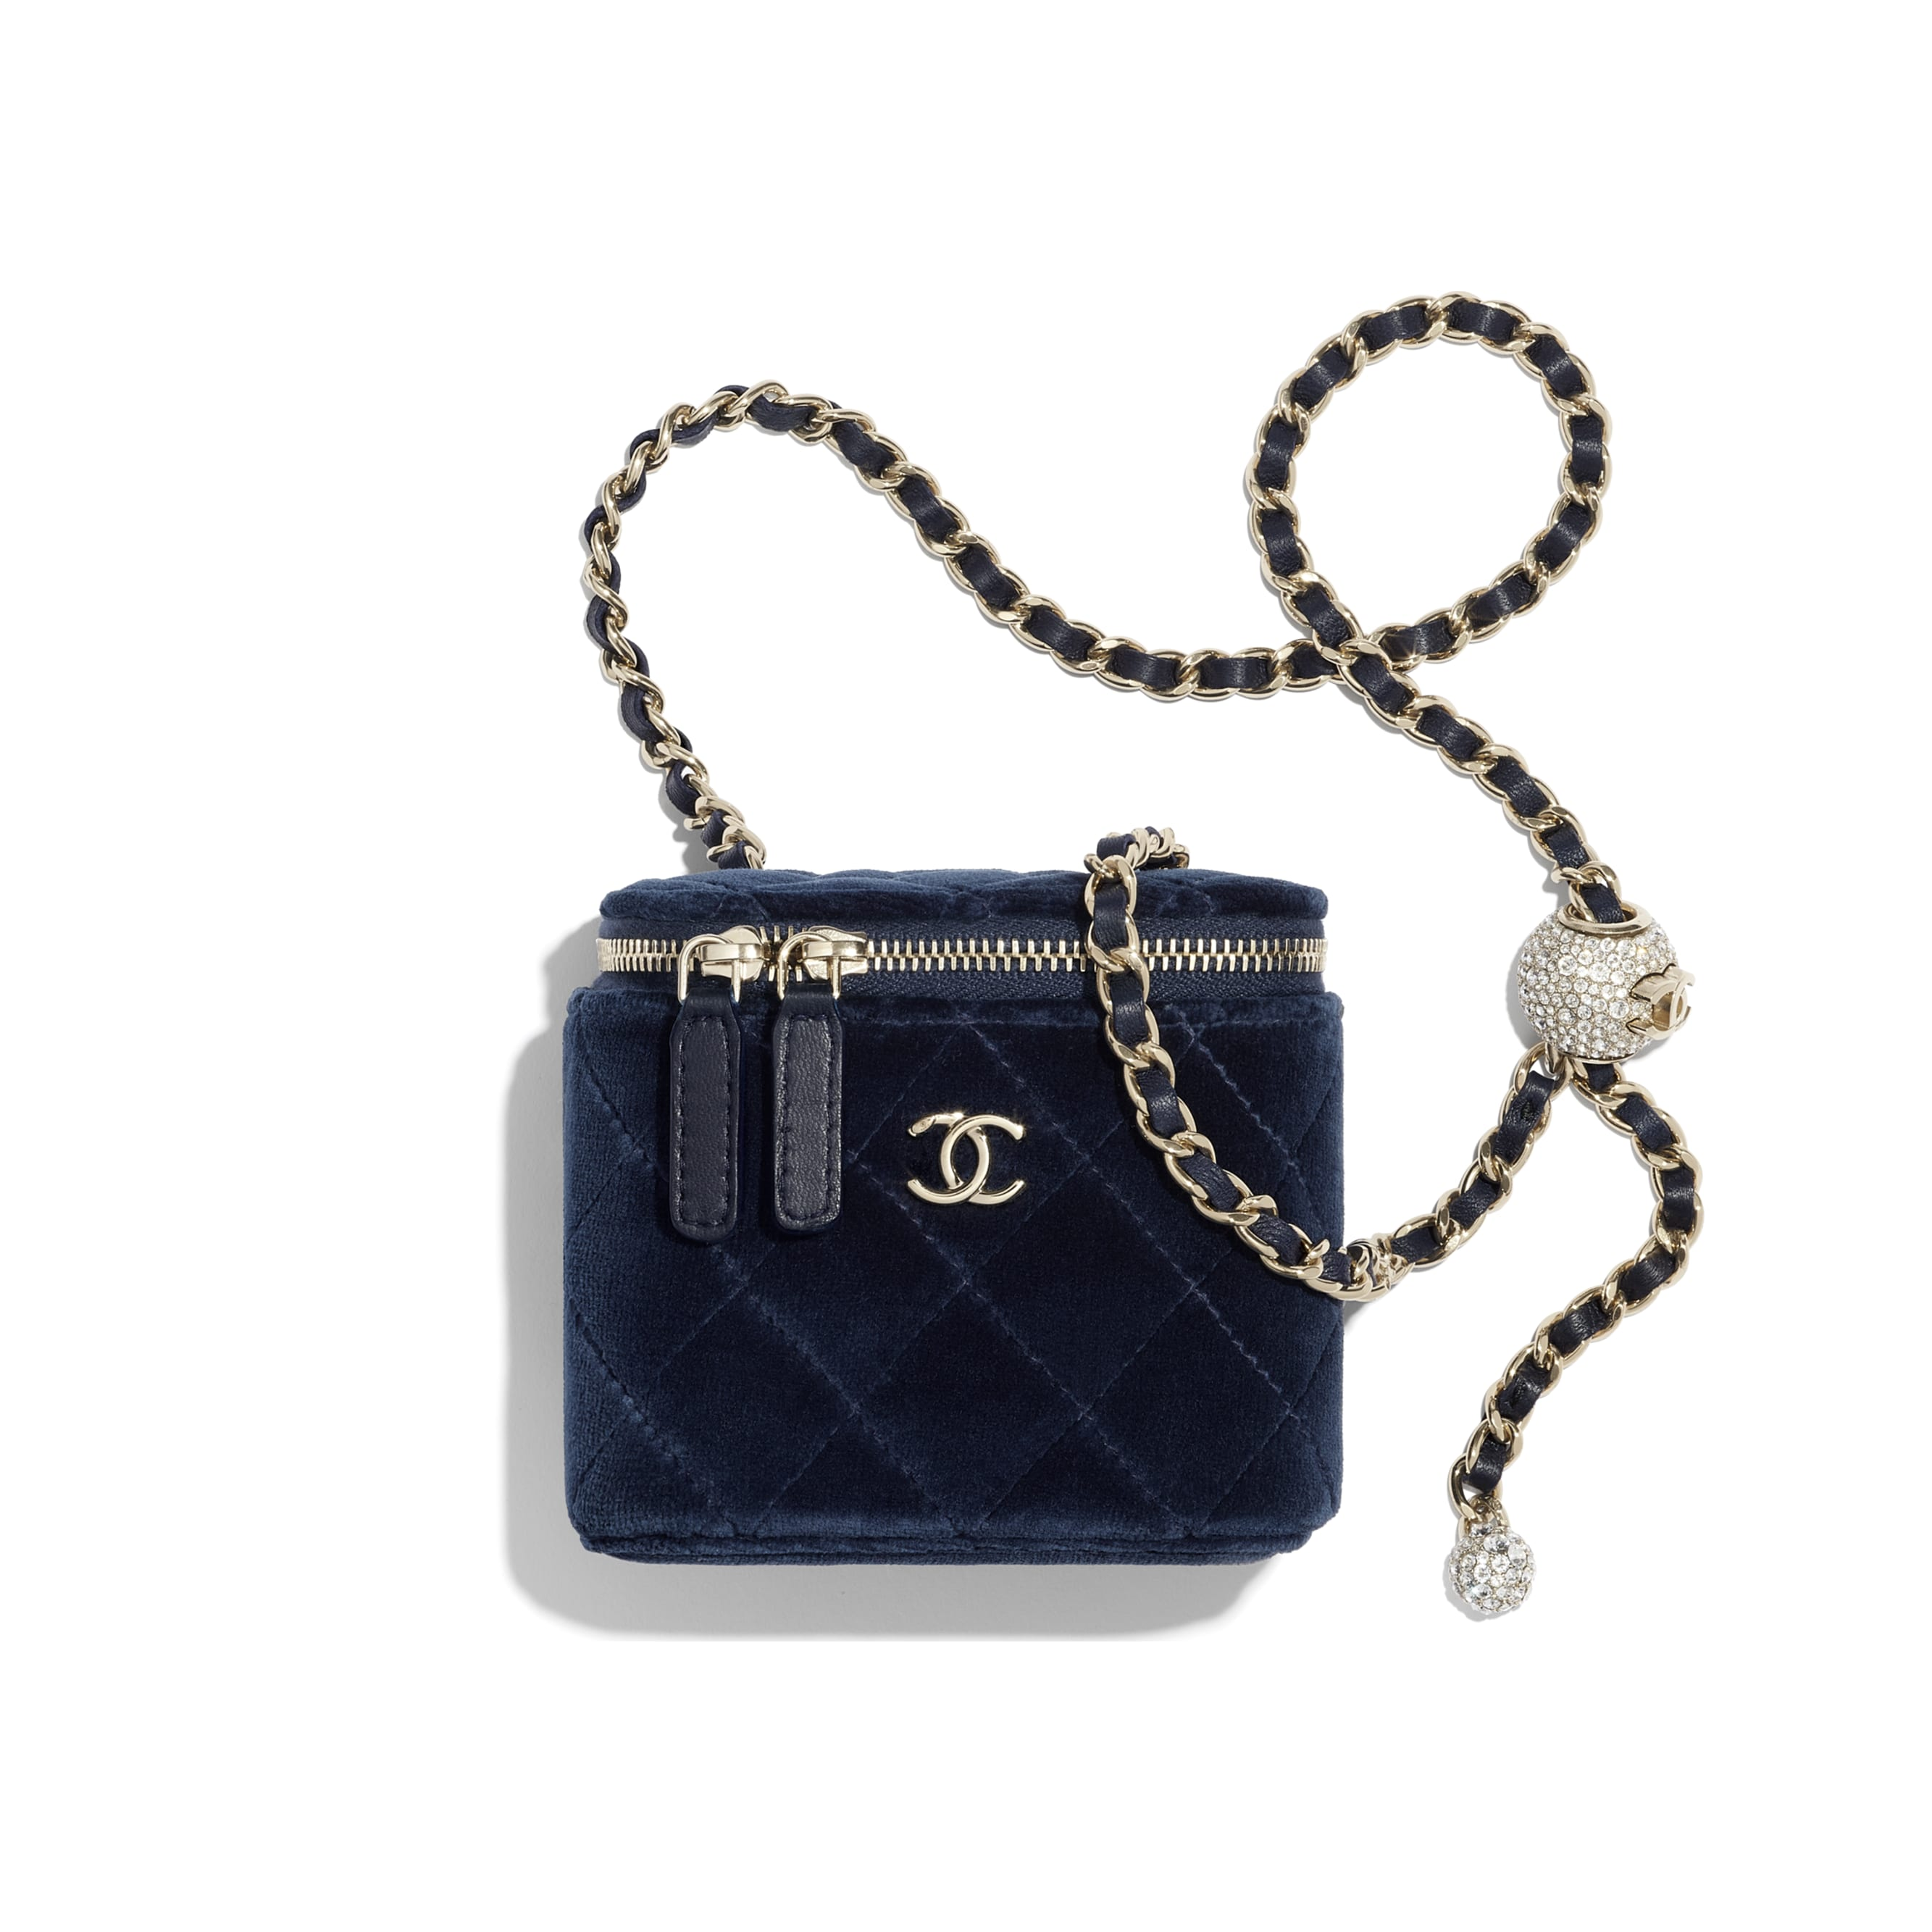 Small Classic Box with Chain - Navy Blue - Velvet, Diamanté & Silver-Tone Metal - CHANEL - Default view - see standard sized version